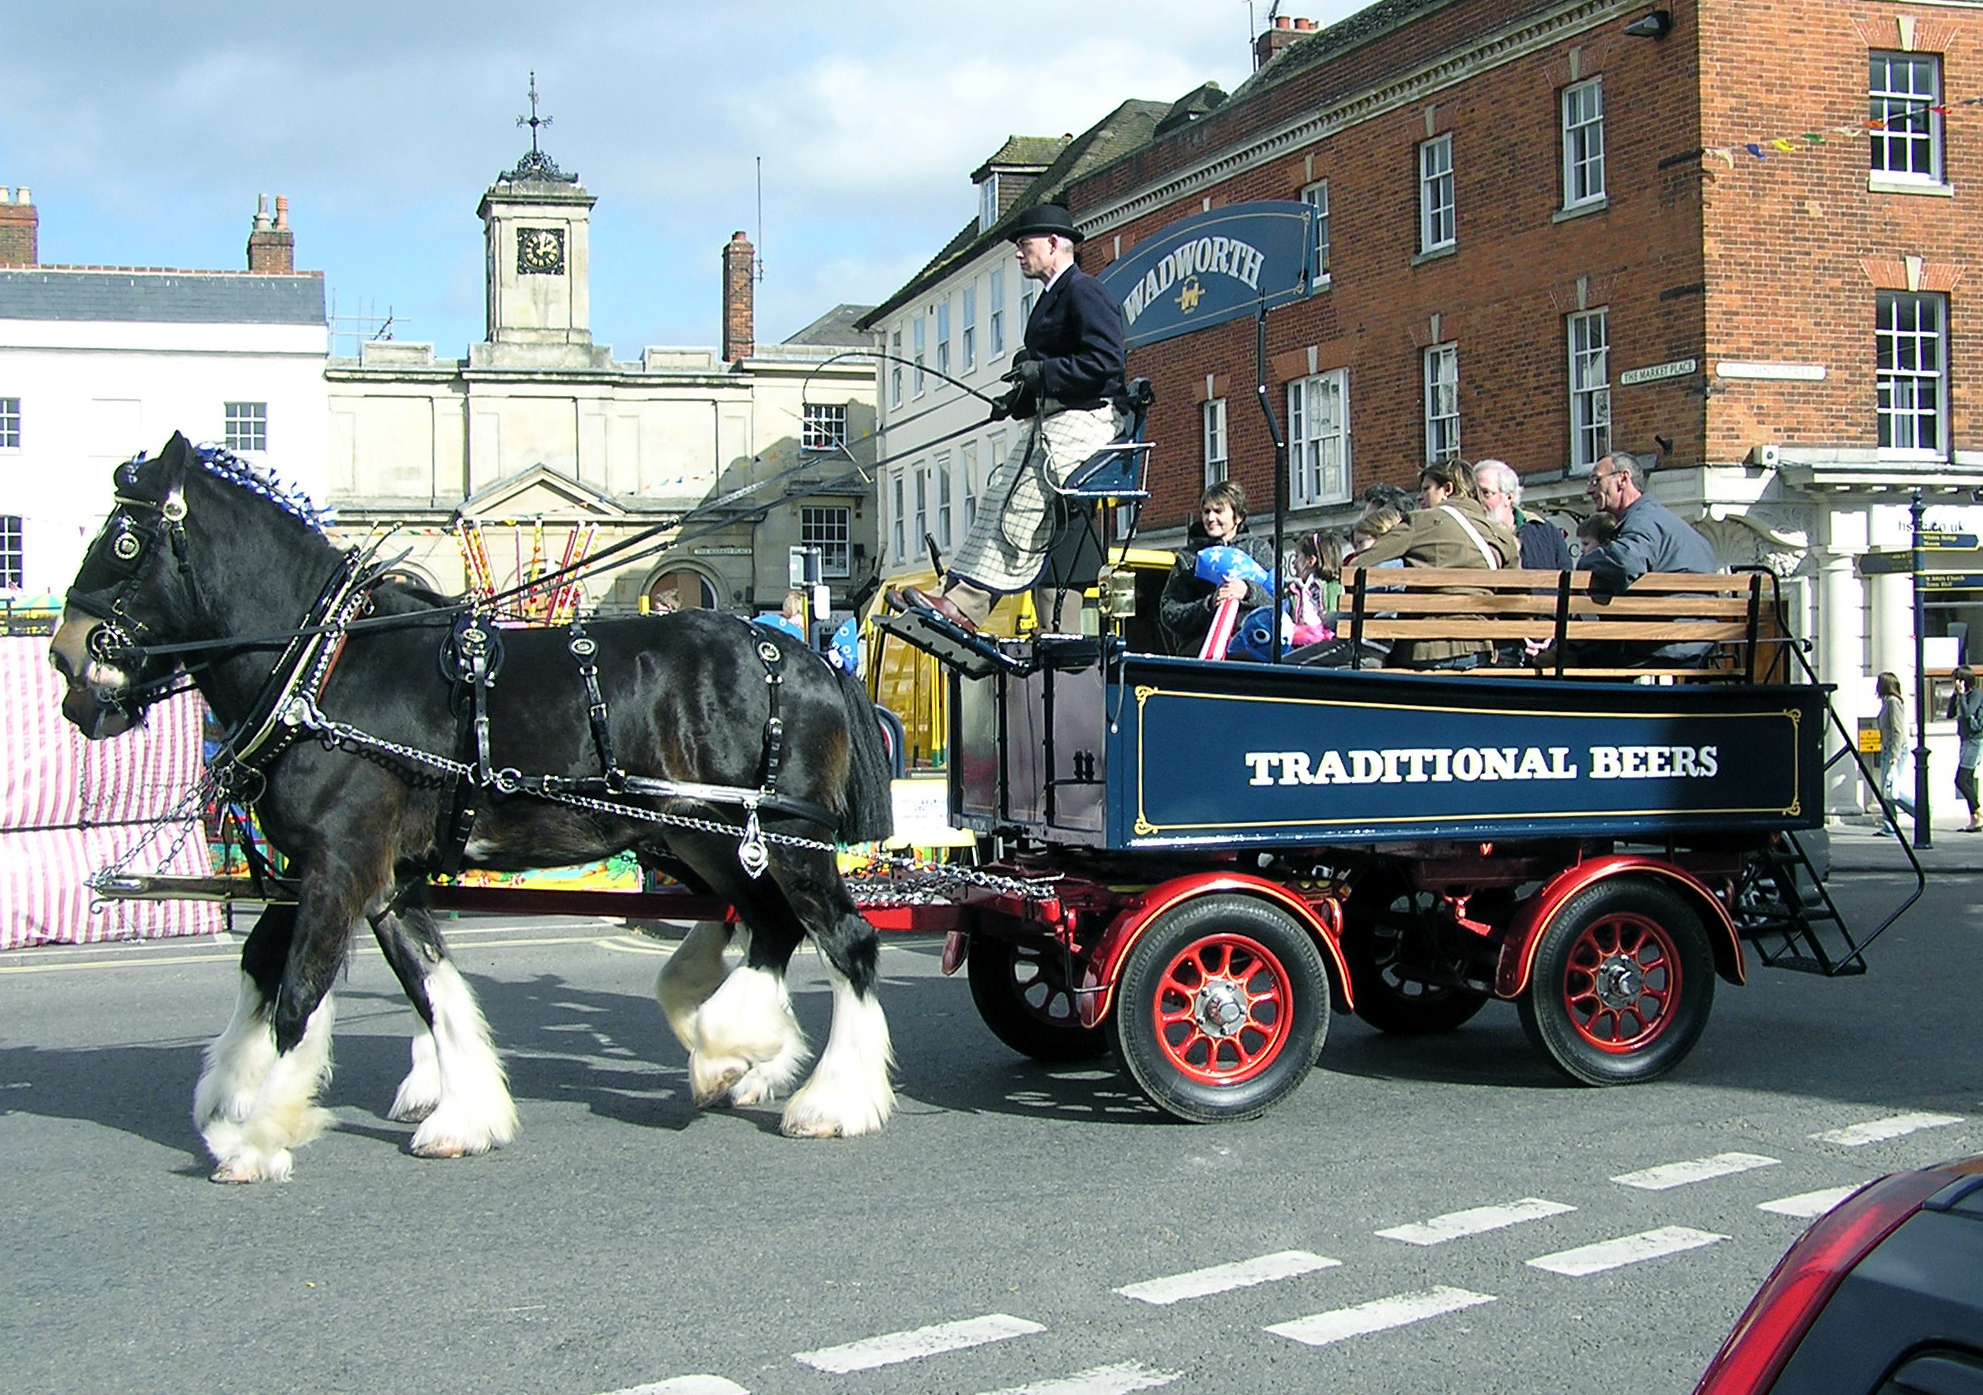 These Shire Horses Are Used To Pull A Brewery Dray Delivering Beer To Pubs  In England In This Picture, Members Of The Public Are Being Given A Ride